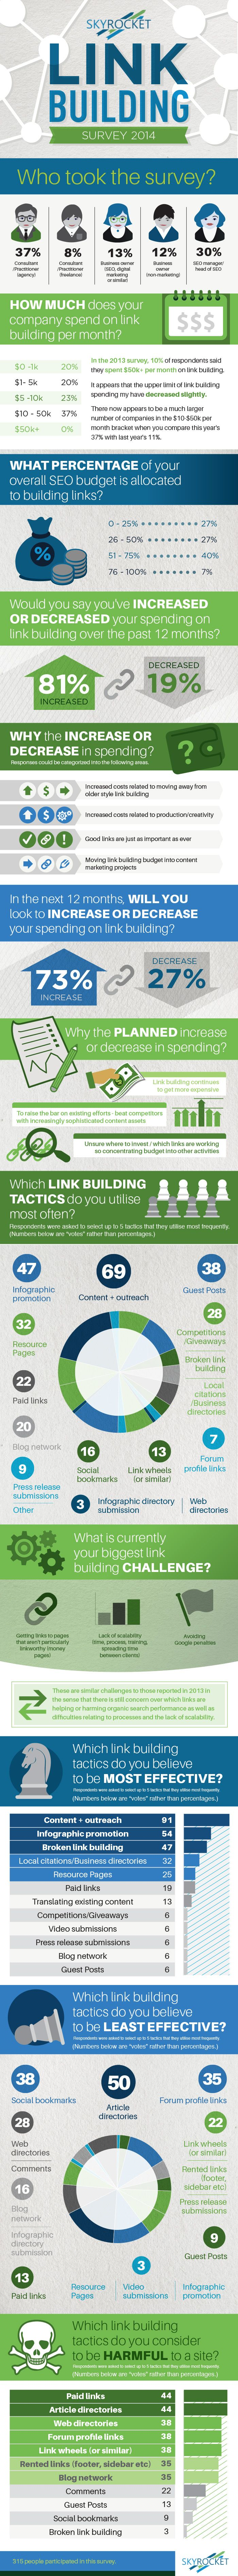 #SEO The New Link Building Survey 2014